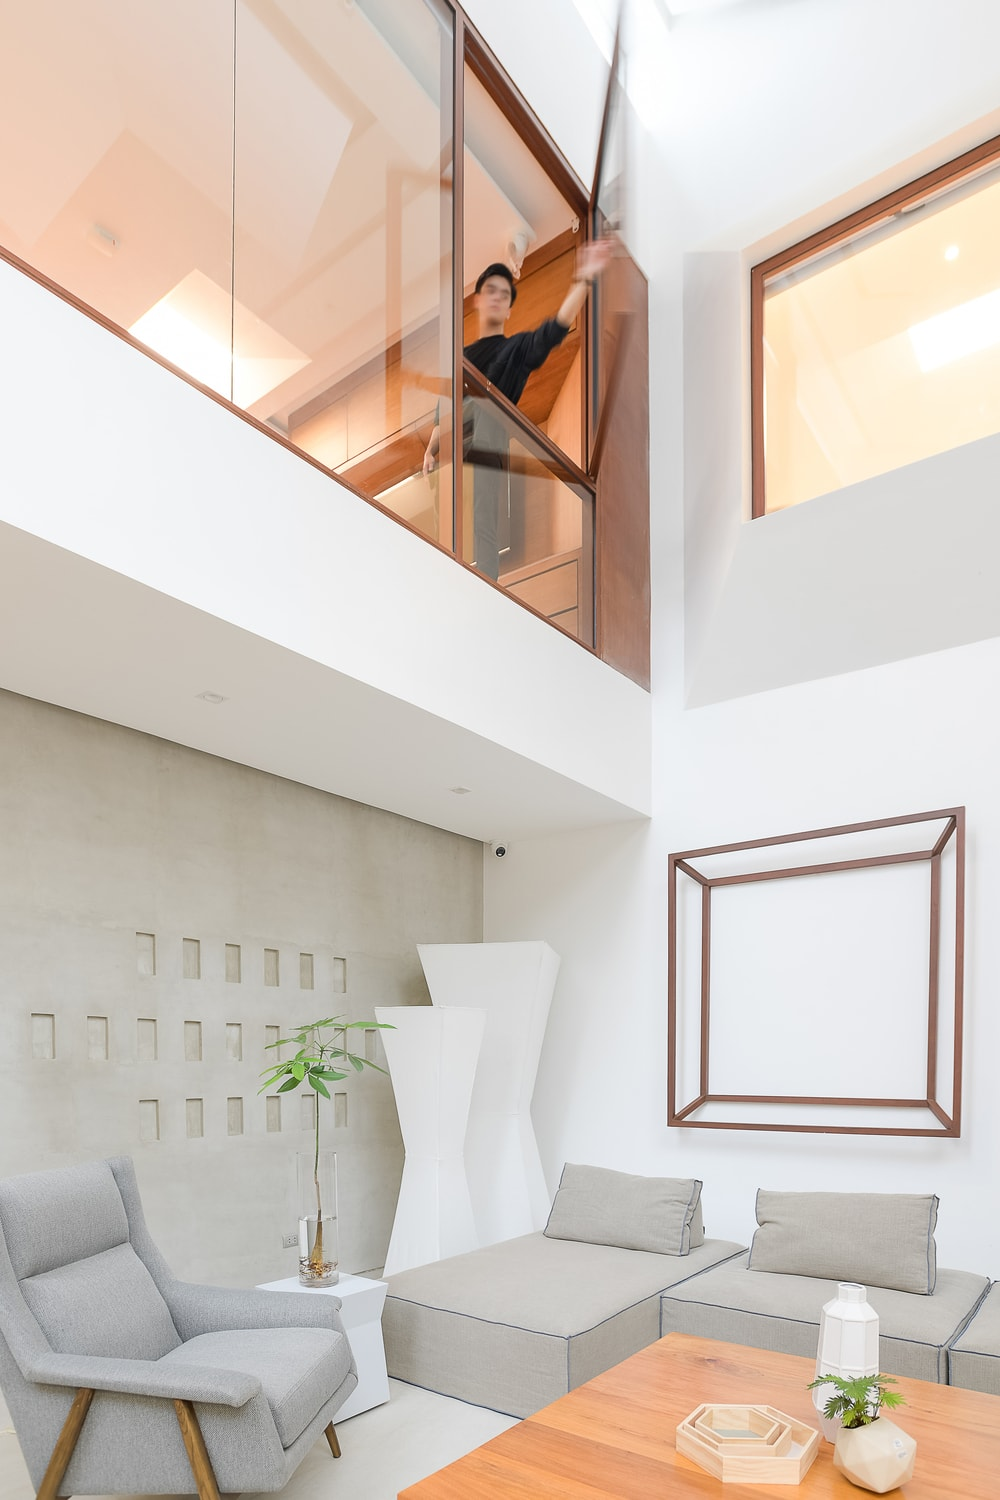 This is a closer look at the glass walls of the indoor balcony above the living room that has a window that can be opened.